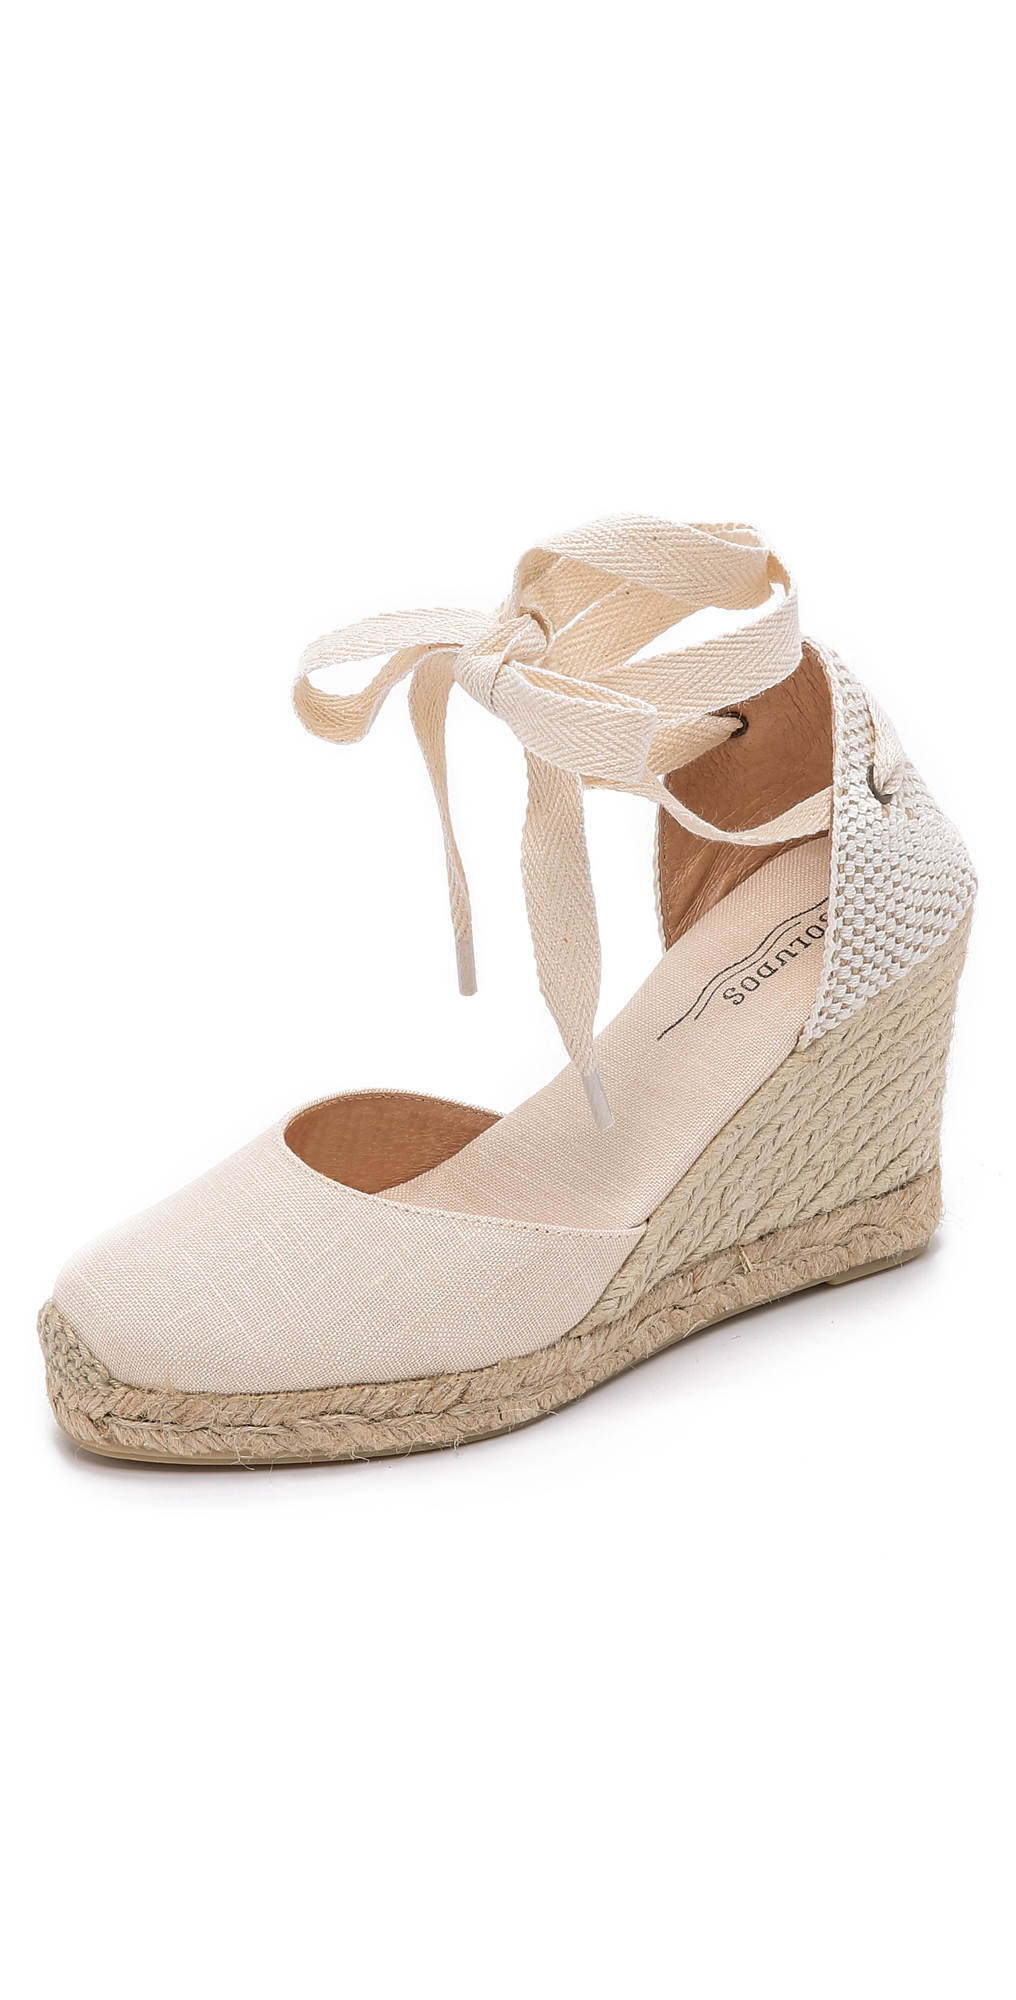 Tall Wedge Espadrilles Soludos